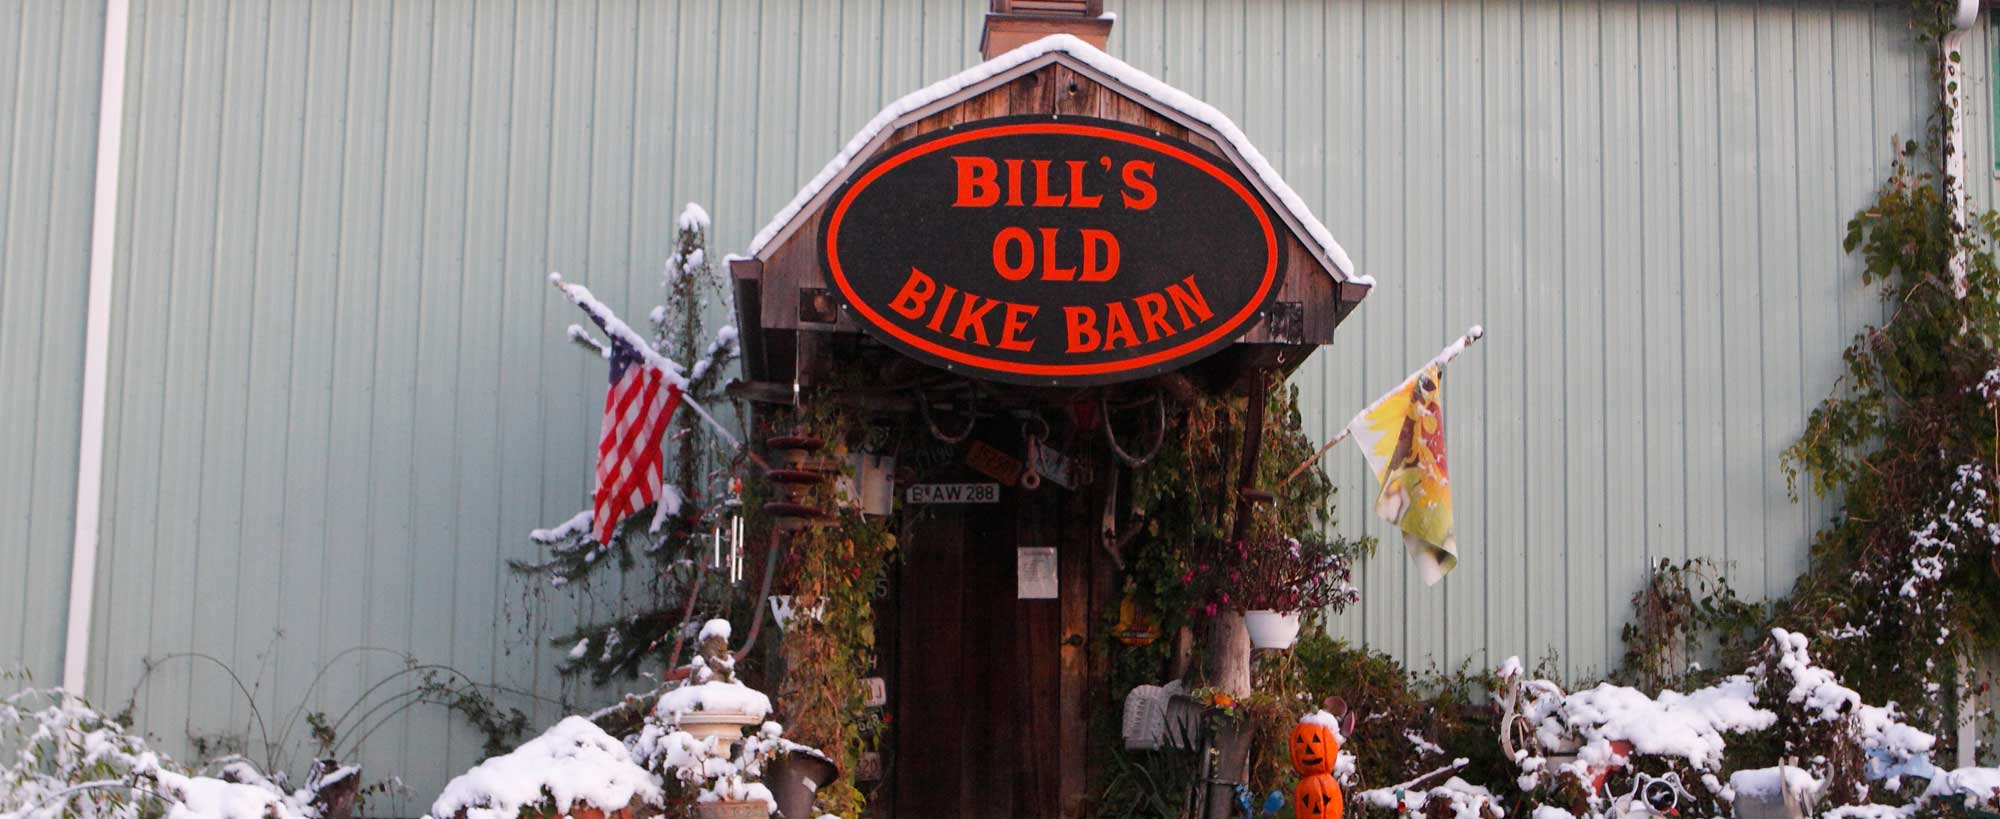 Visit Bill's Old Bike Barn. An experience you'll never forget